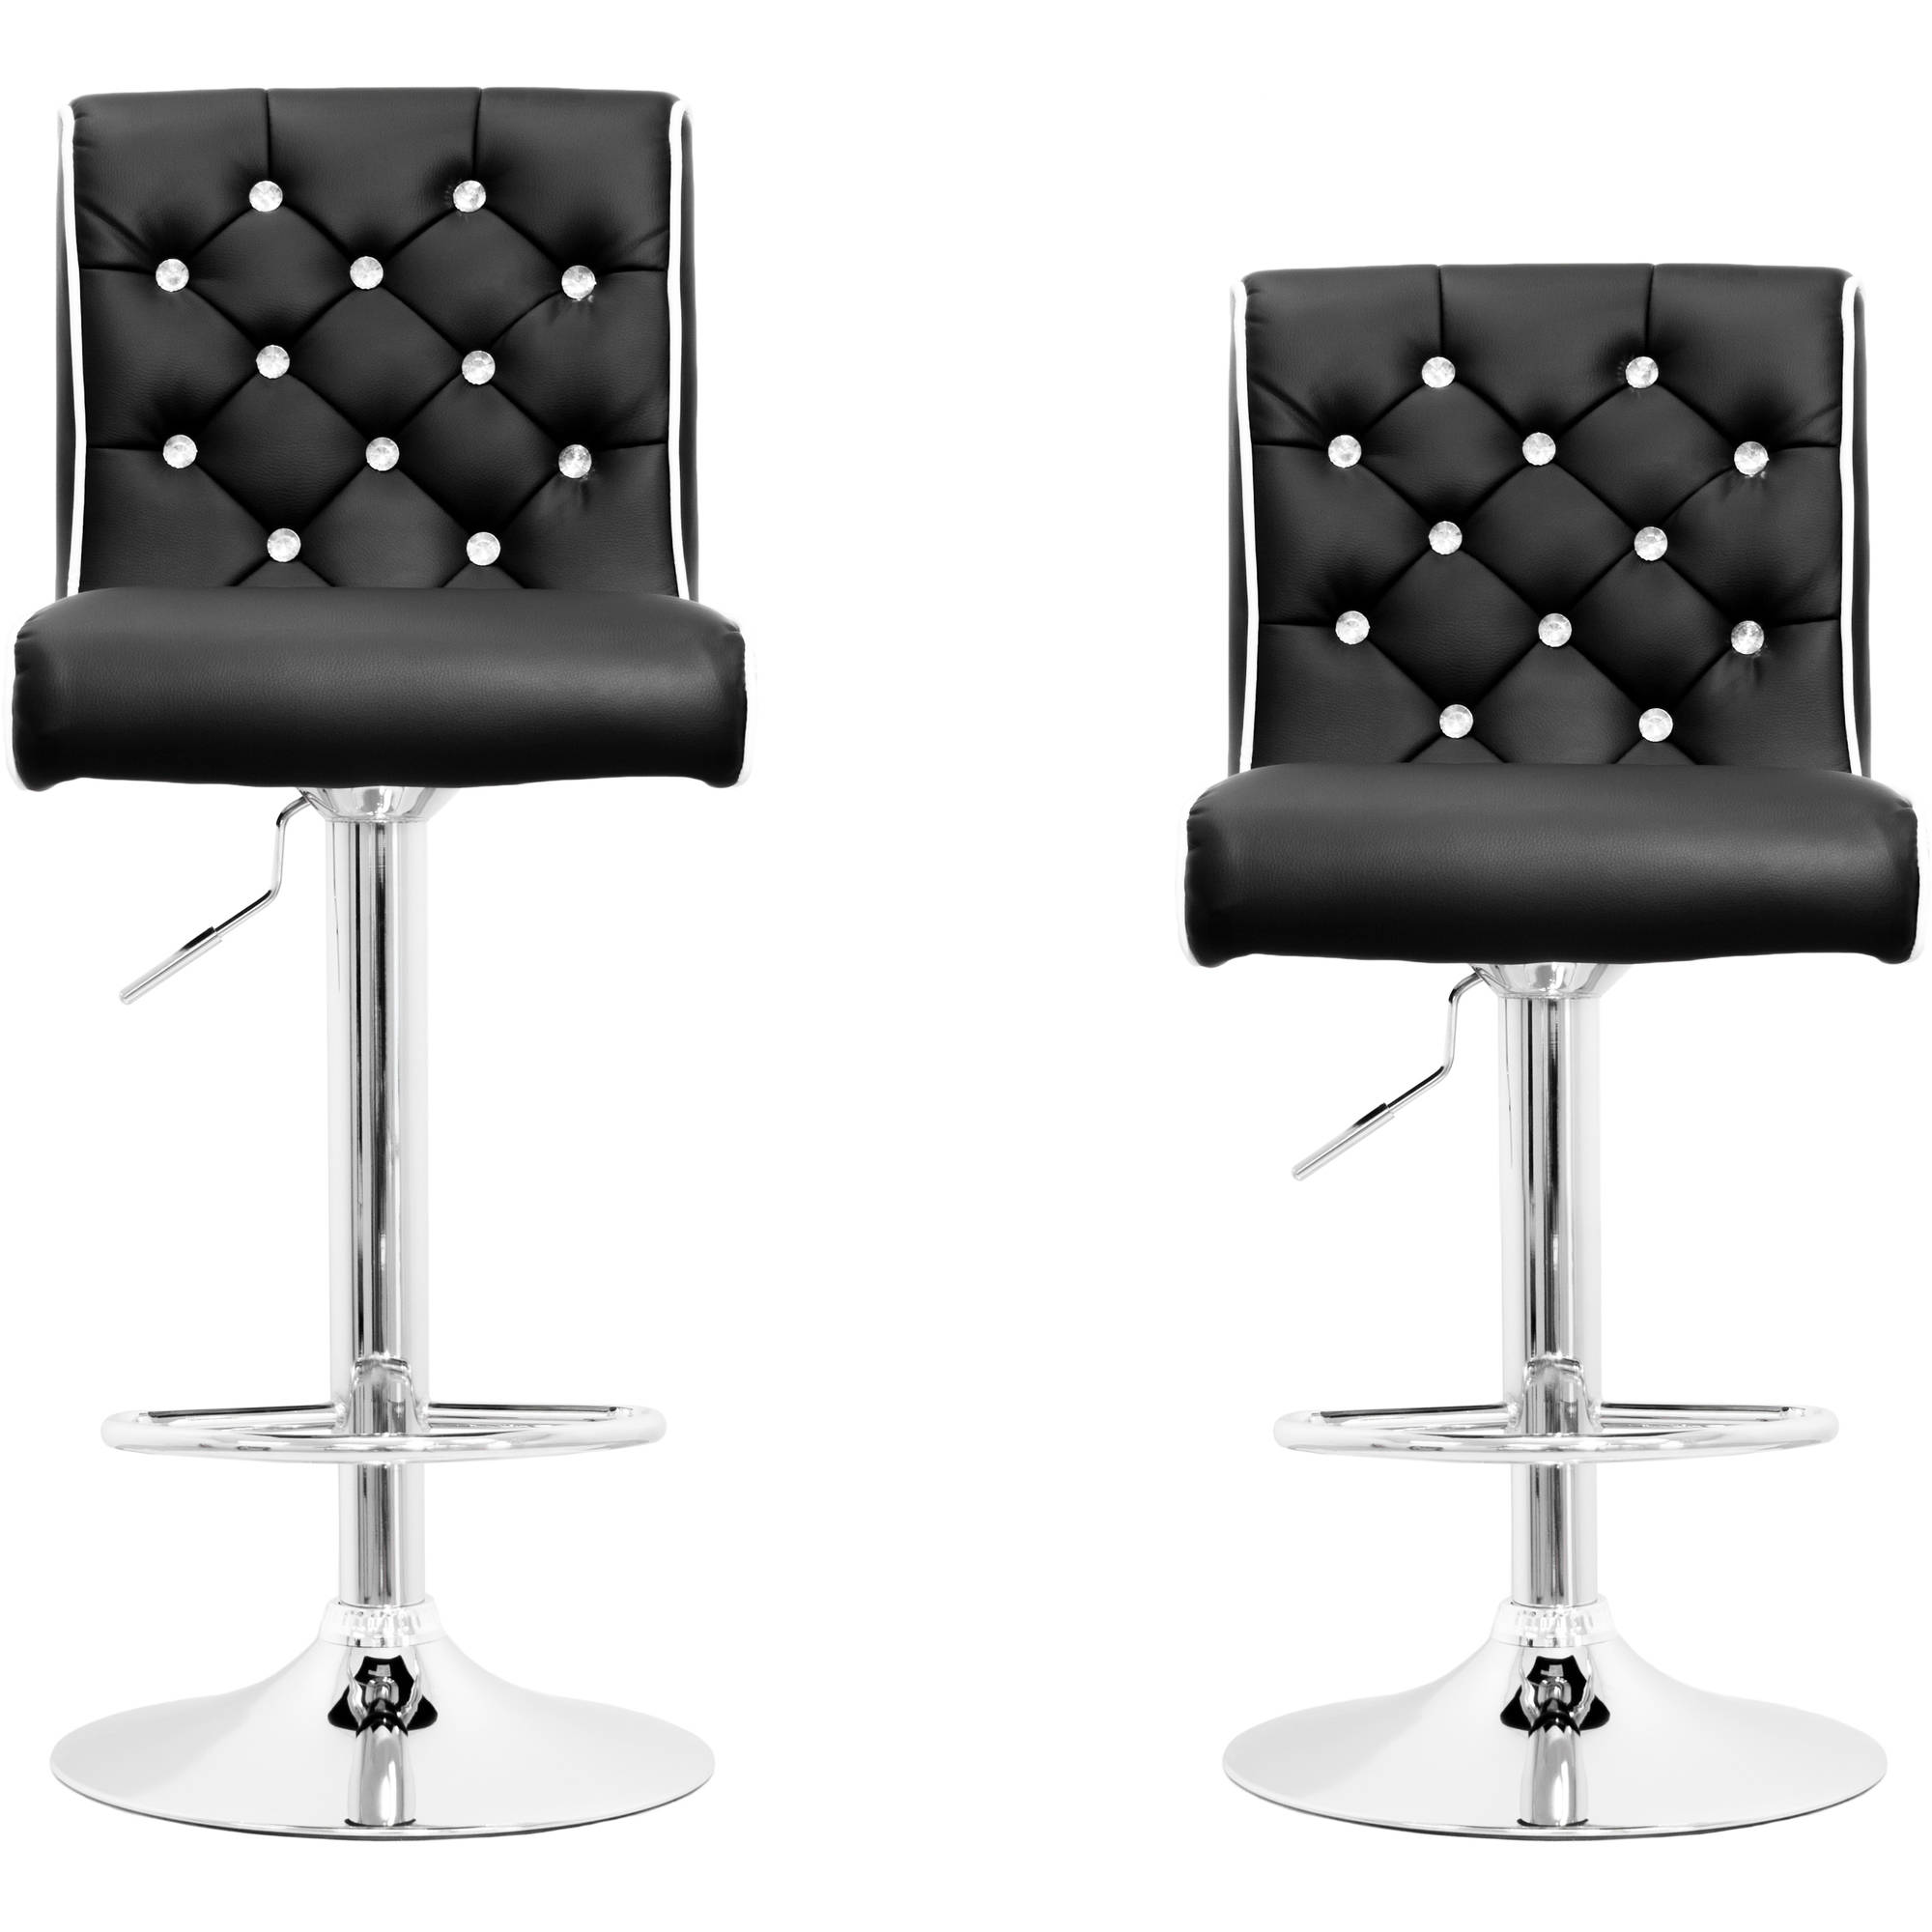 Astounding Best Master Furniture Tufted Vinyl With Like Crystals Adjustable Height Swivel Bar Stool Set Of 2 Black Or White Gmtry Best Dining Table And Chair Ideas Images Gmtryco